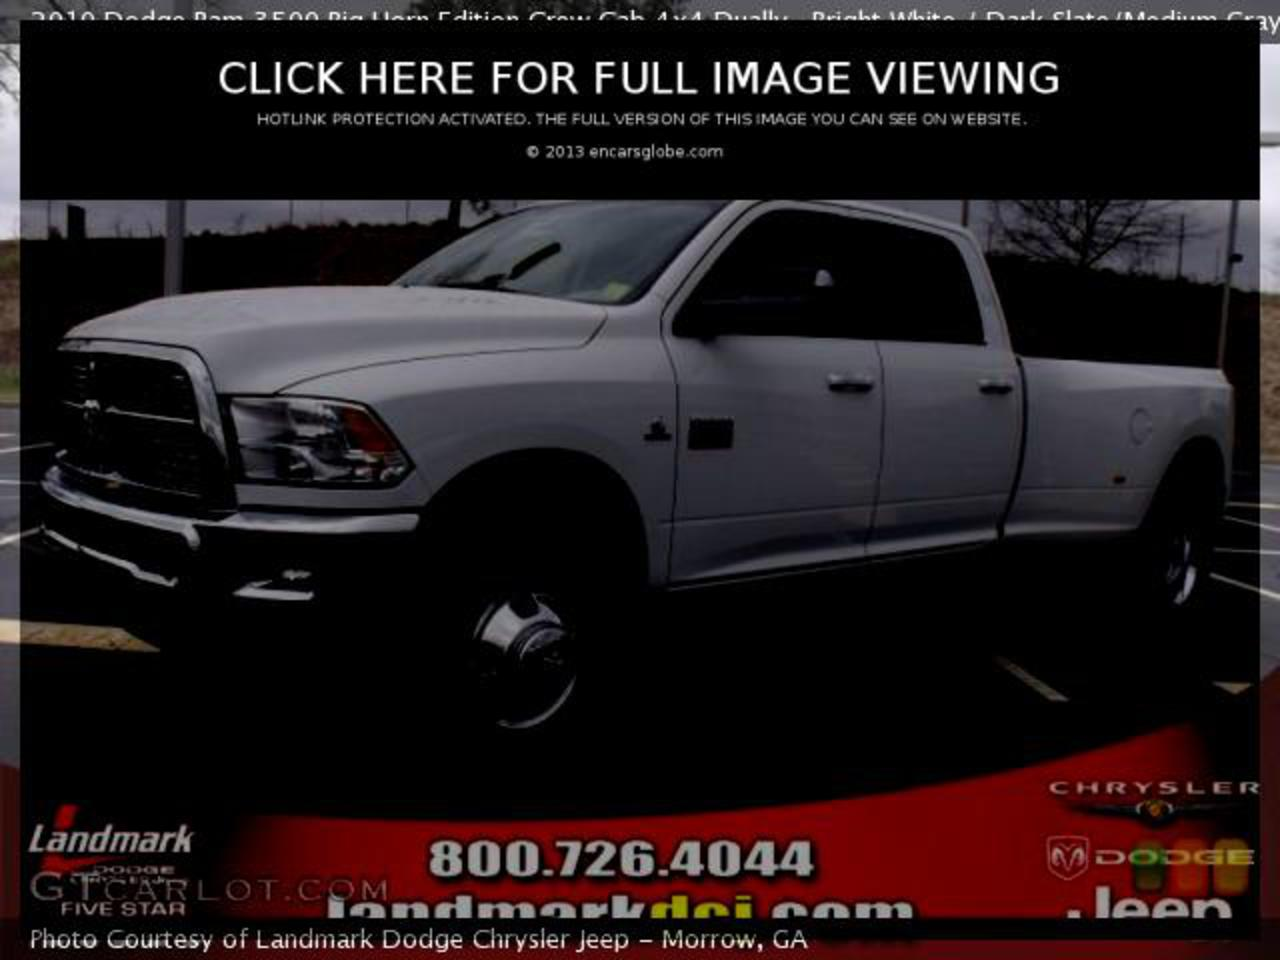 Dodge Ram 3500 Heavy Duty Big Horn Edition: 05 photo